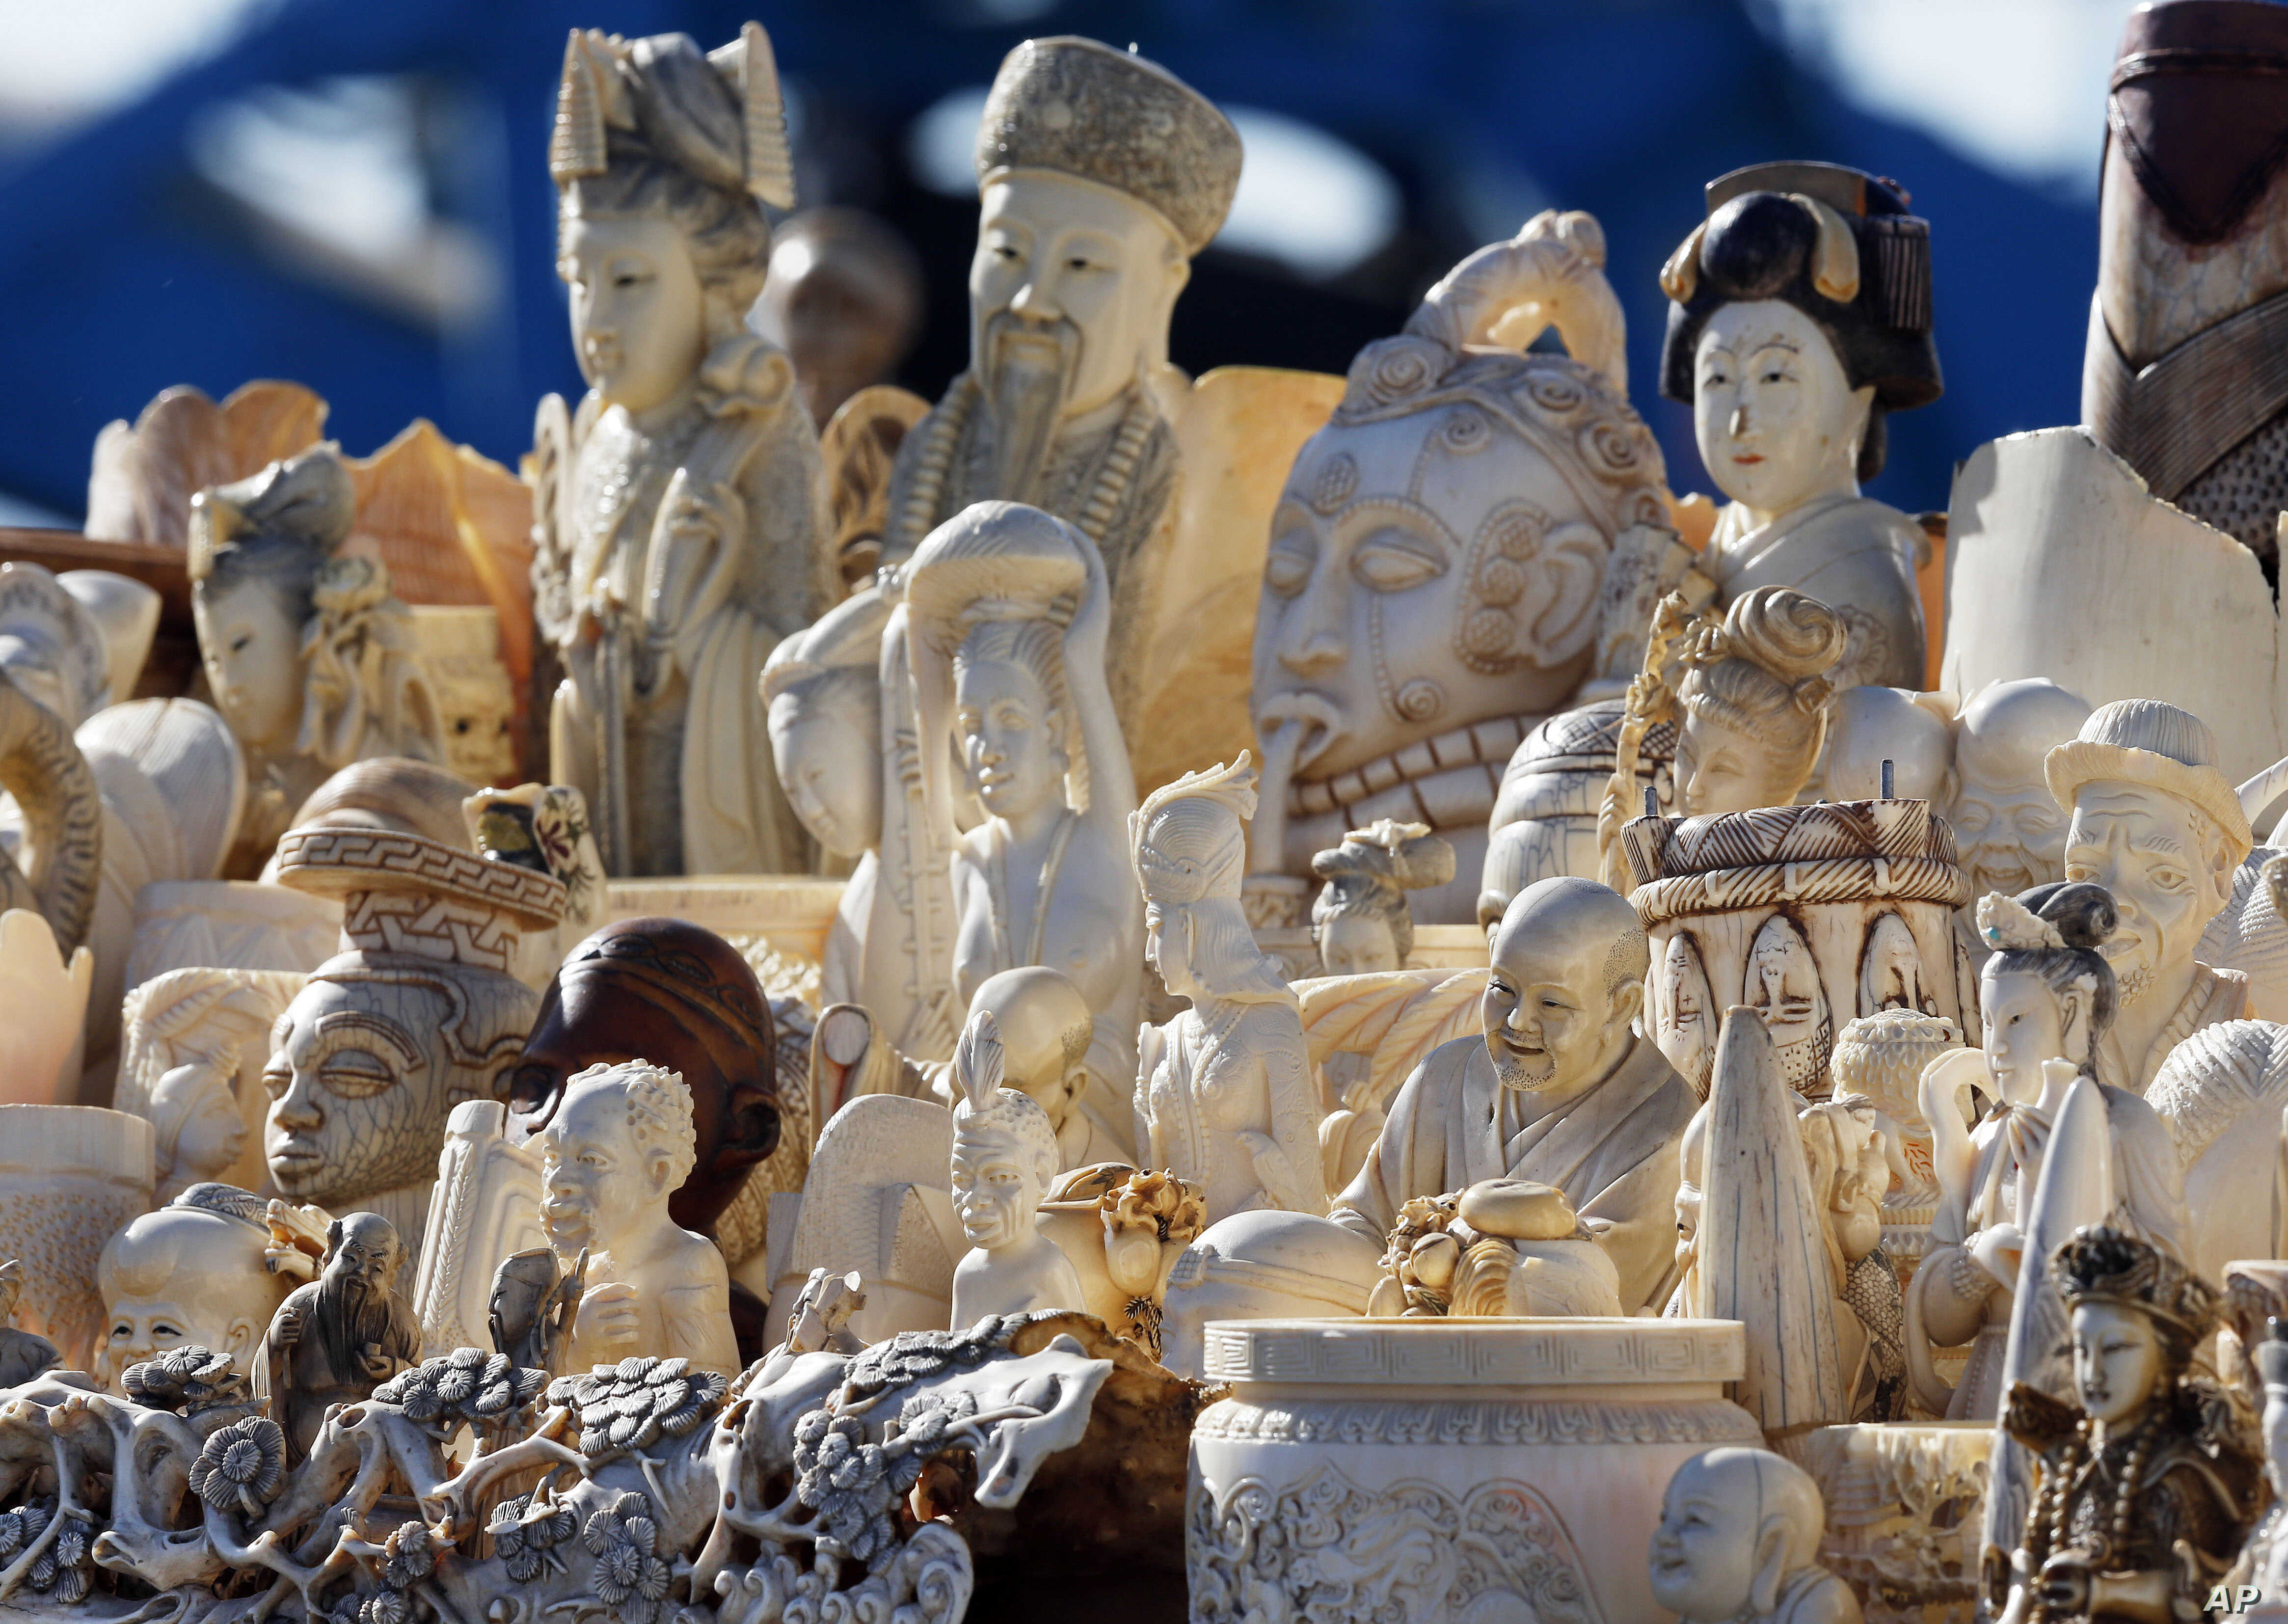 In a U.S. crackdown,confiscated ivory was stacked for crushing last year at the National Wildlife Property Repository at Rocky Mountain Arsenal National Wildlife Refuge in Commerce City, Colorado.